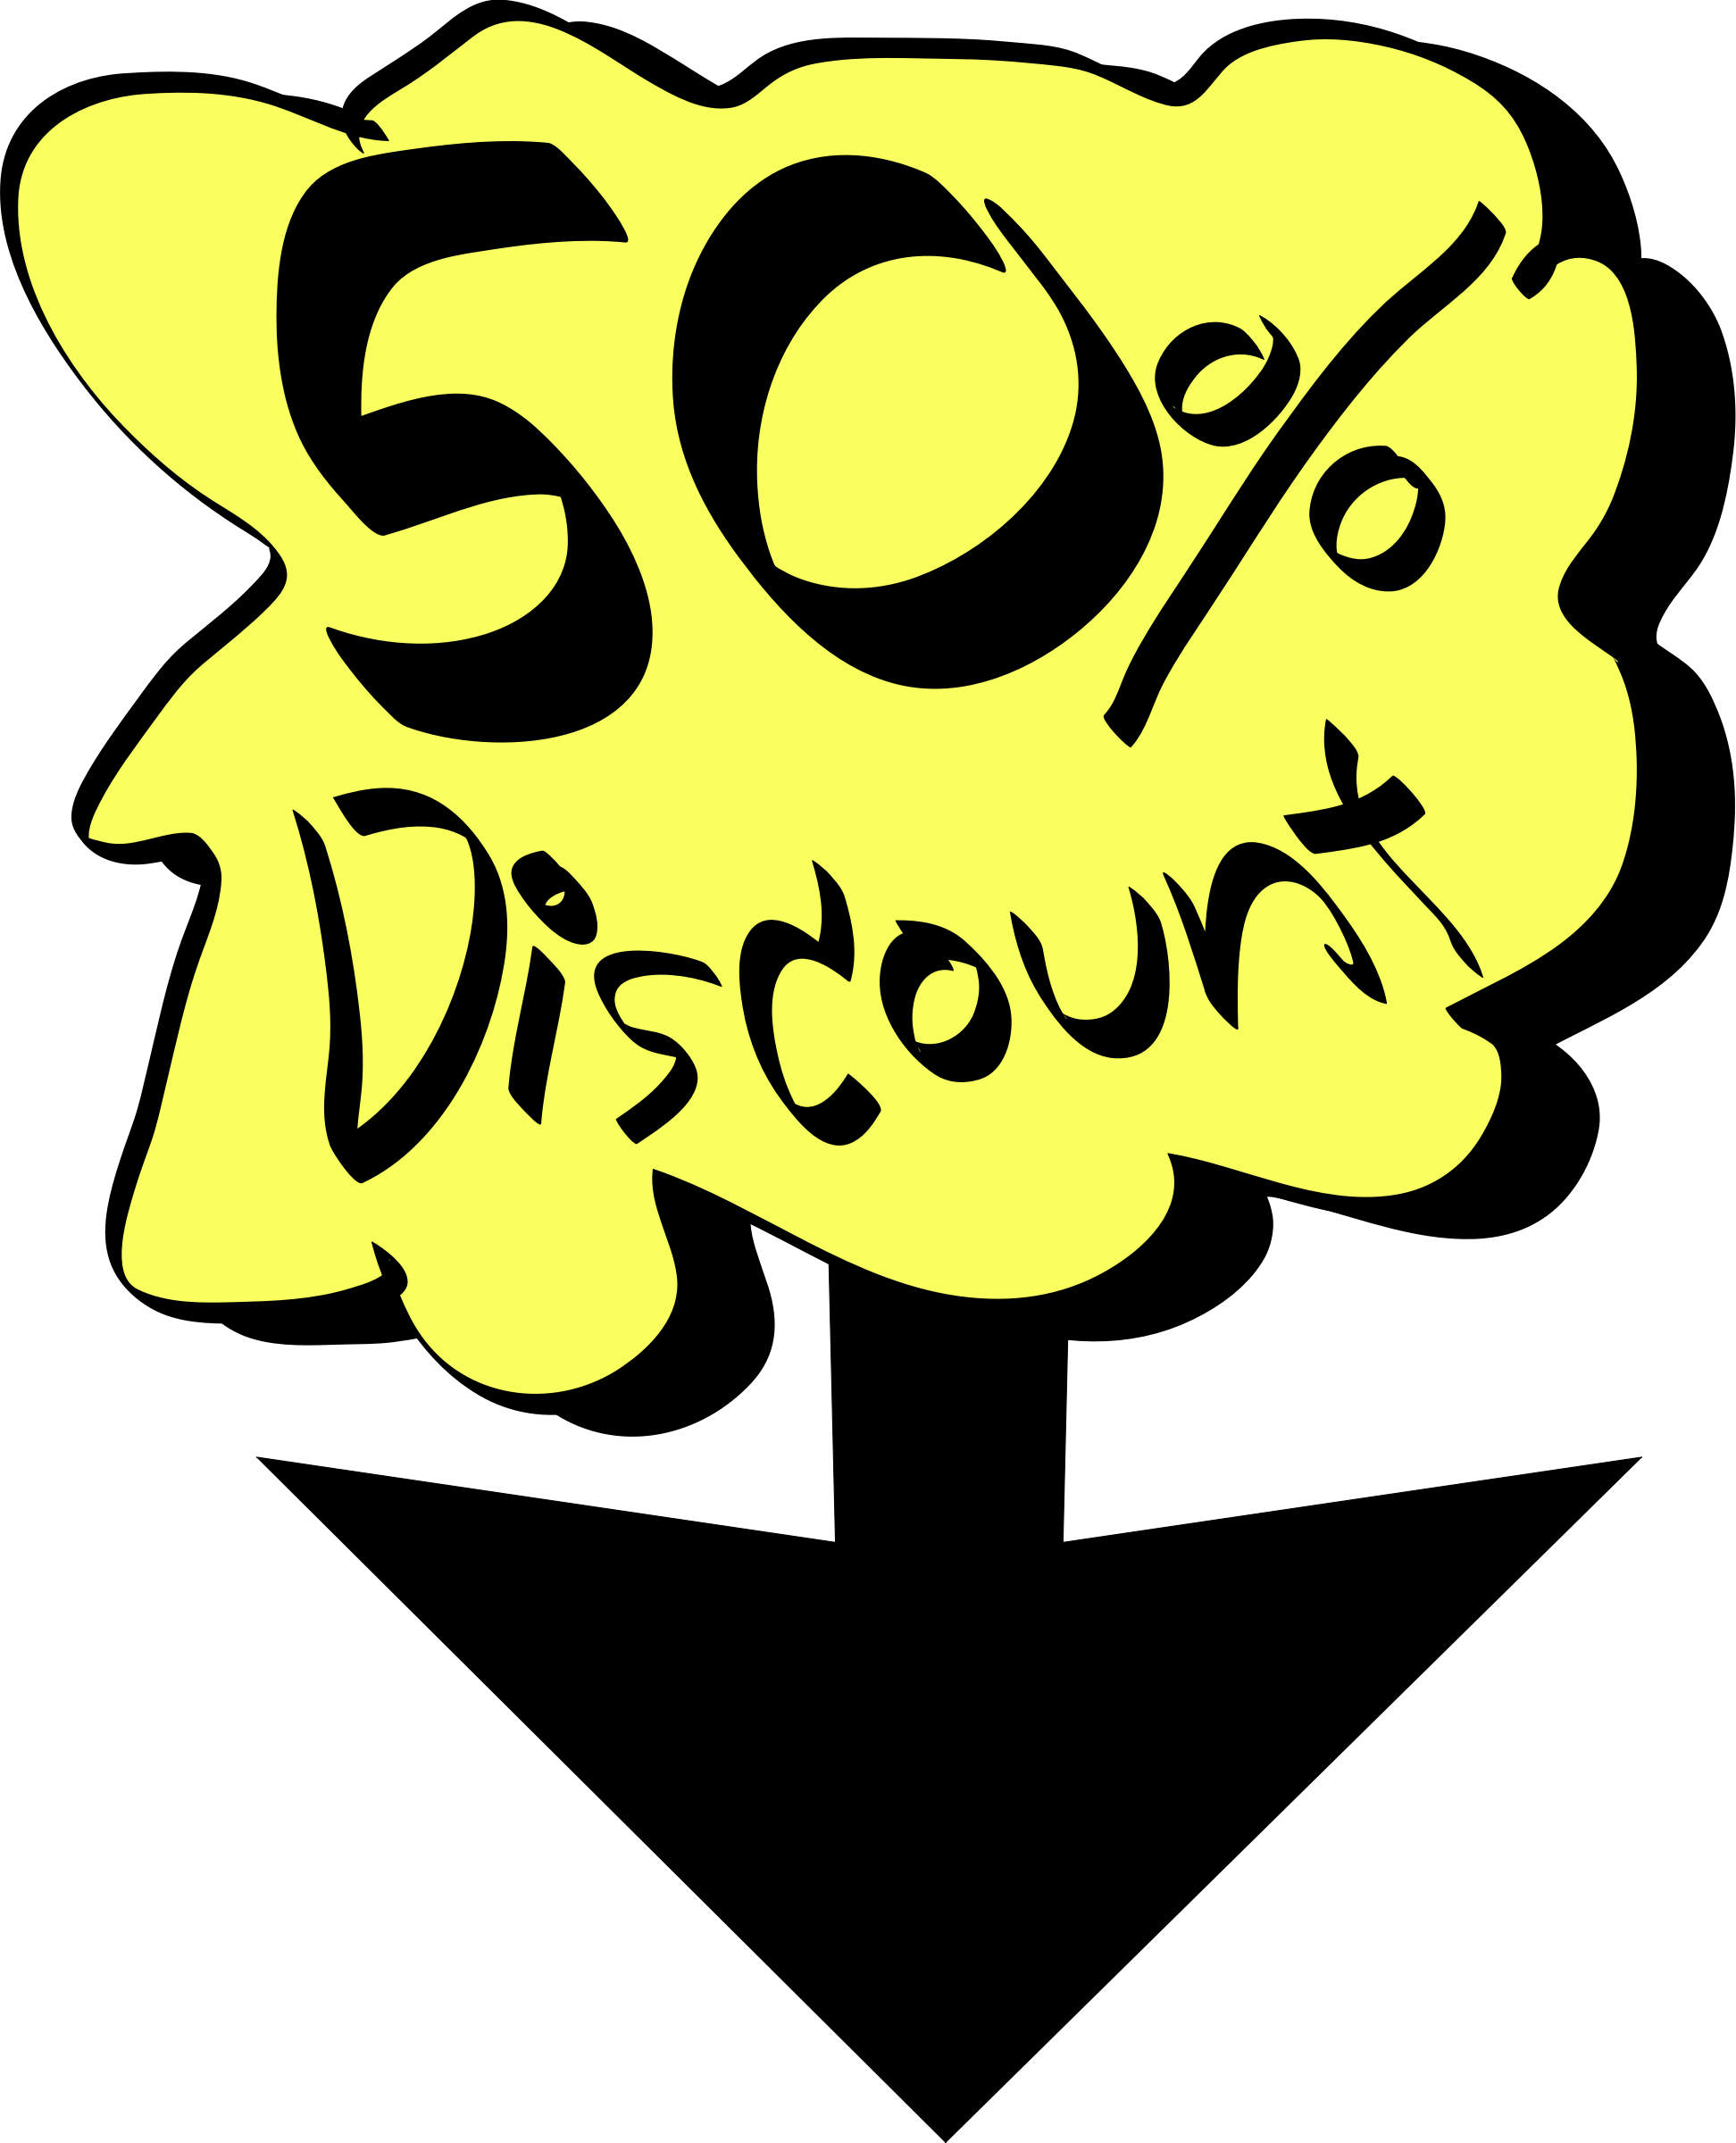 50% Discount by aungkarns